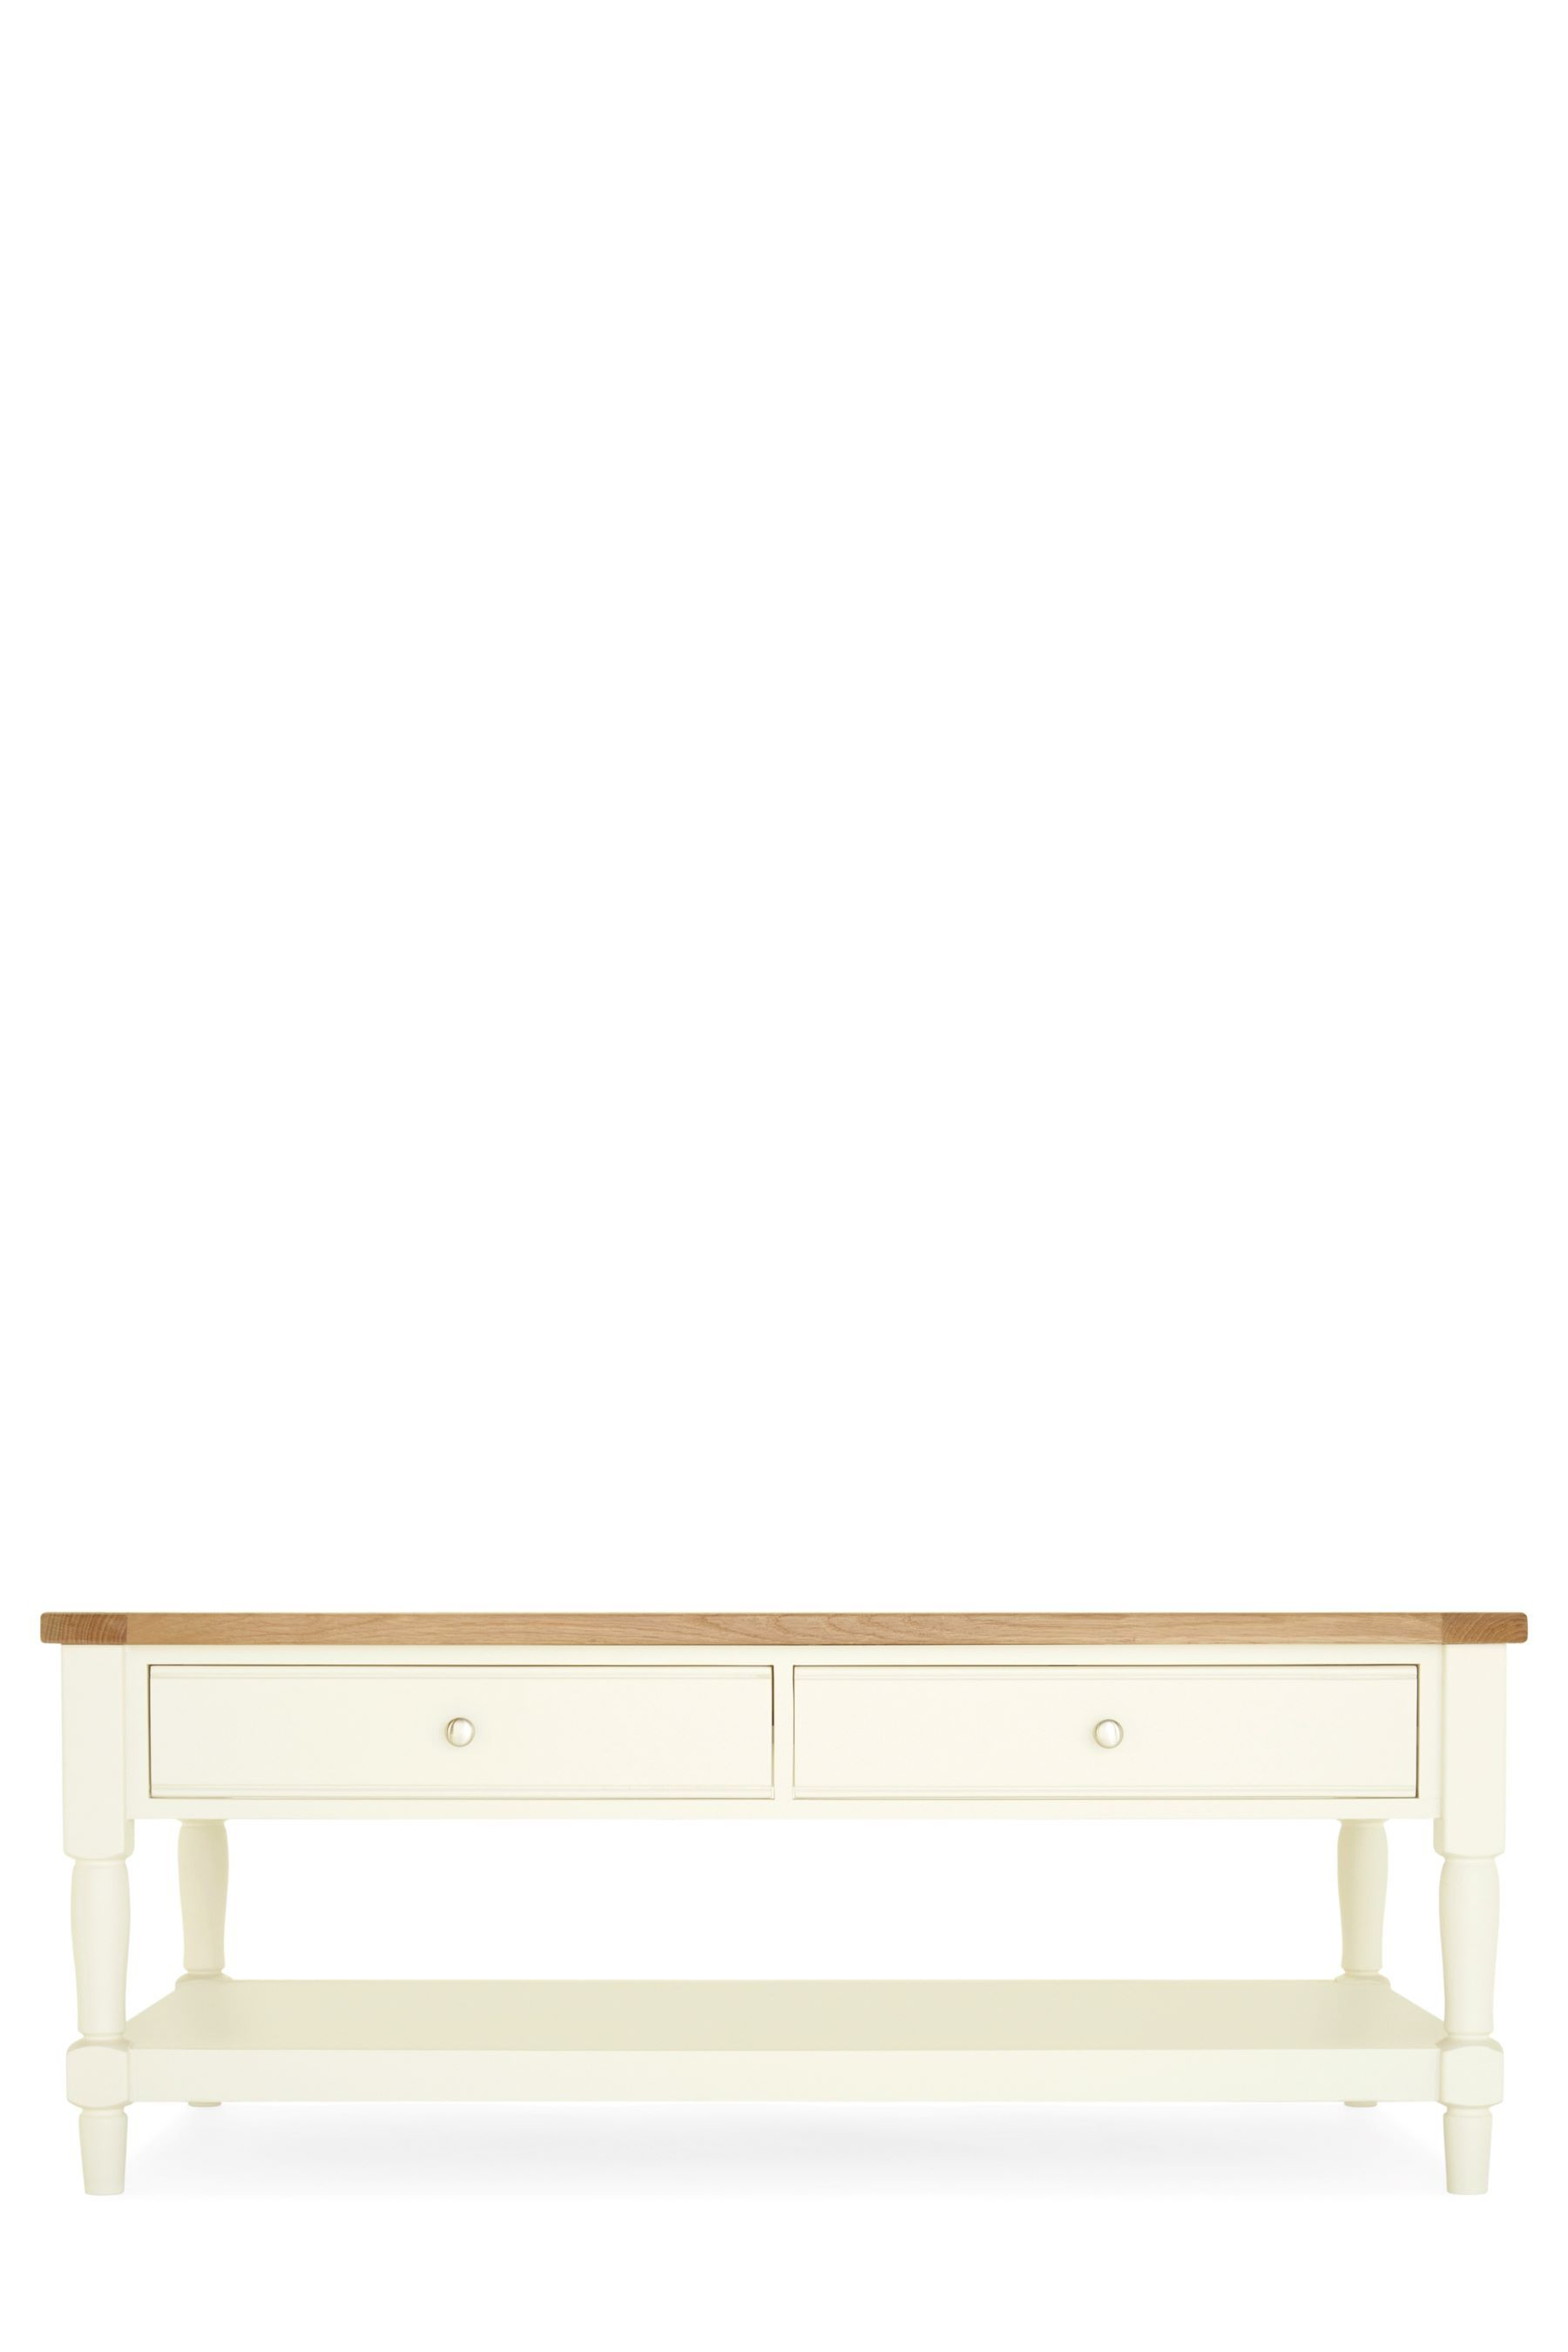 Next Shaftesbury Painted Coffee Table Cream Painted Coffee